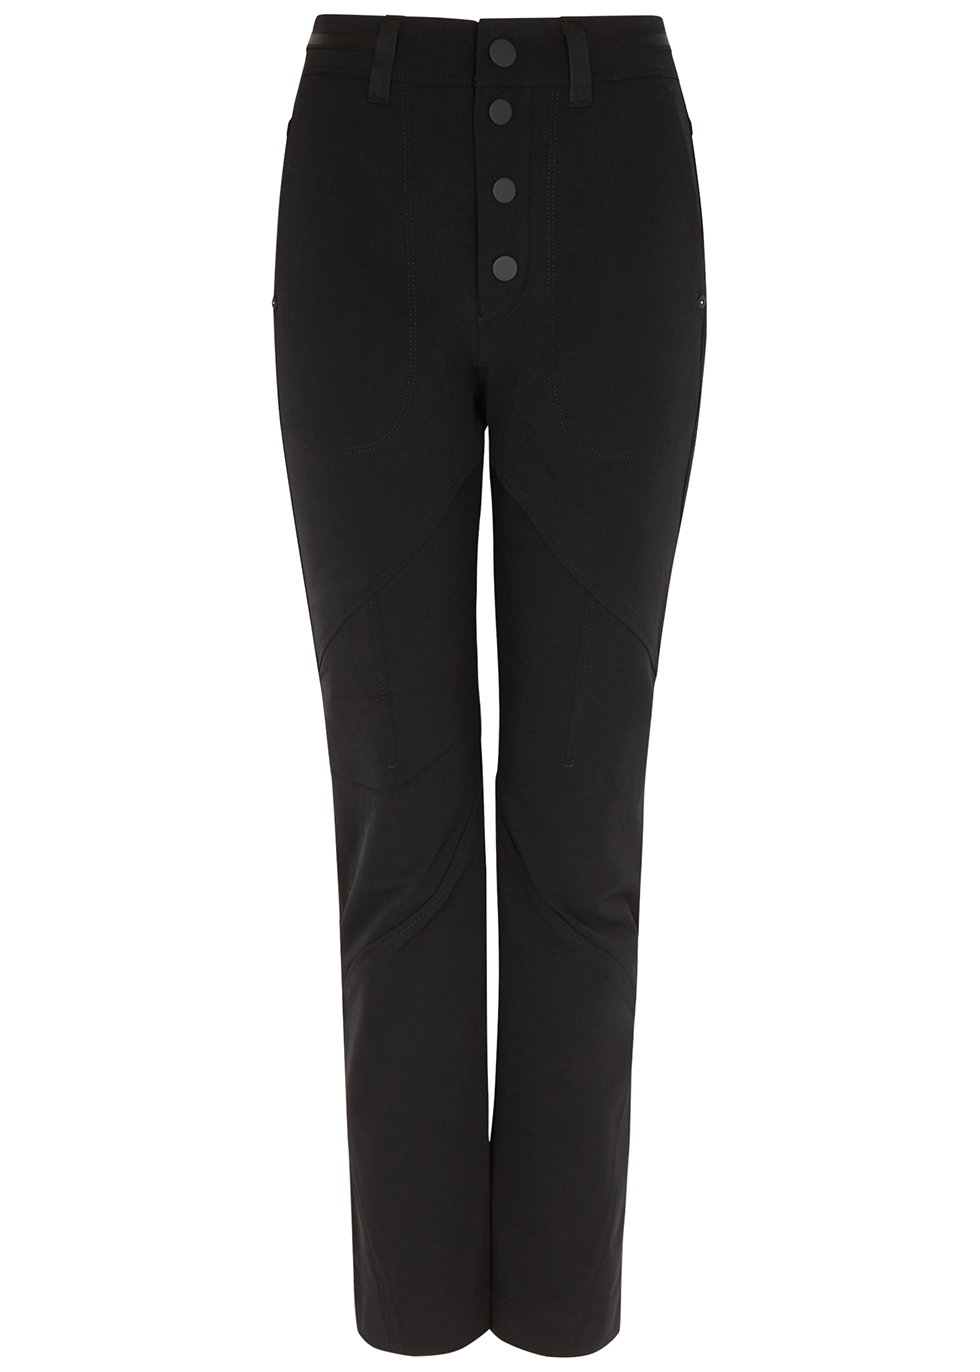 Wayward black slim-leg trousers